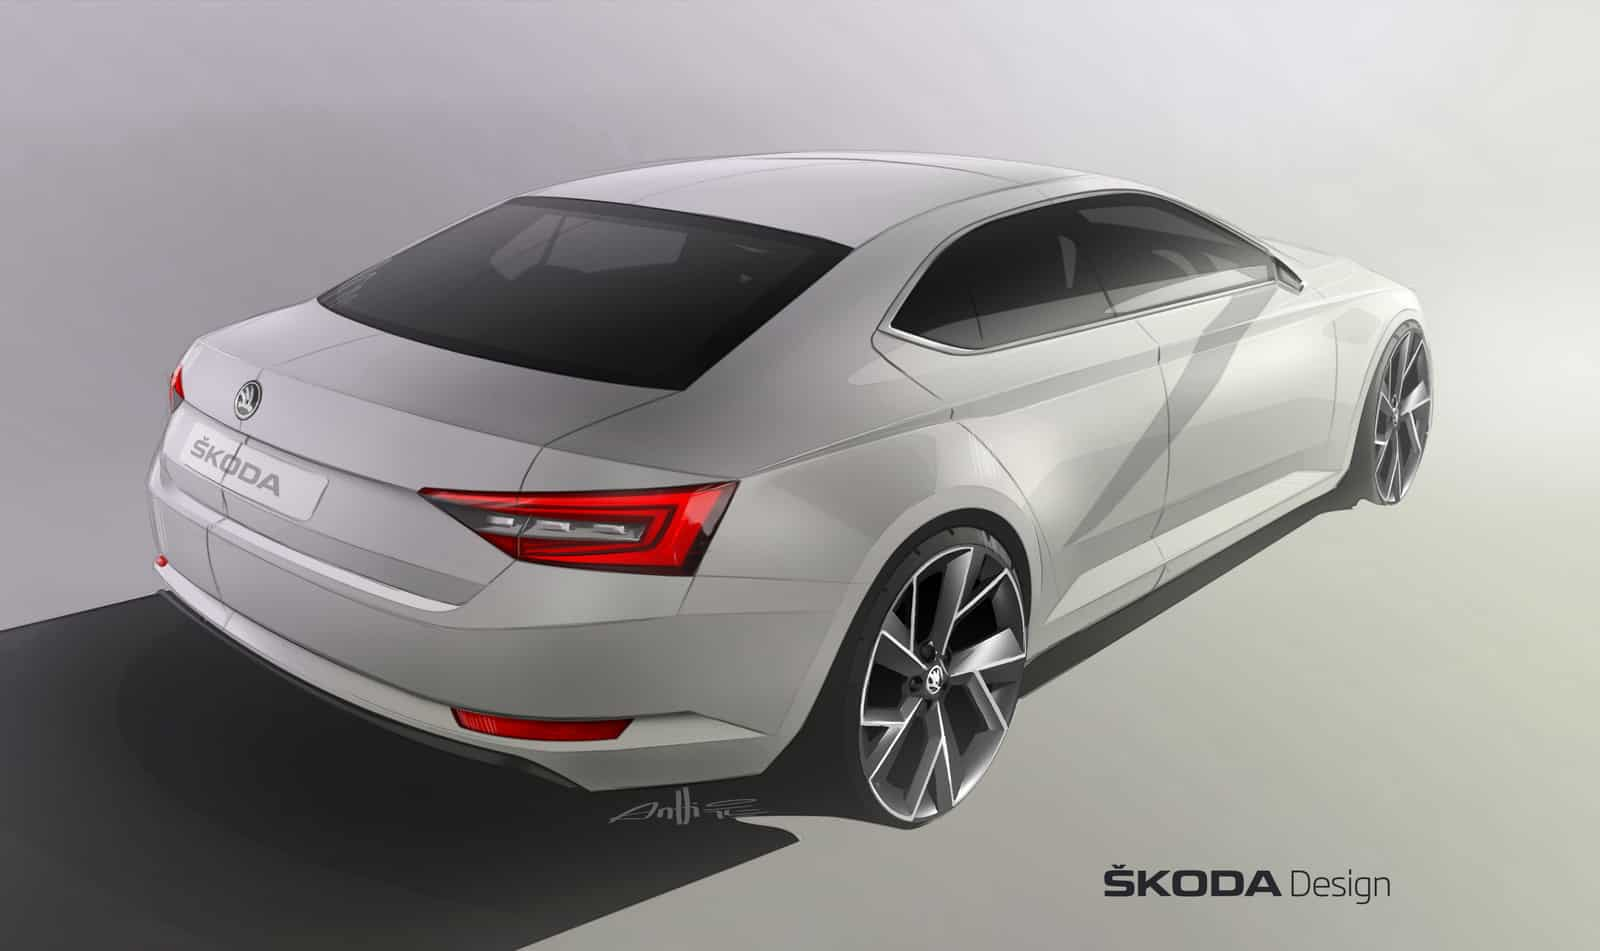 17/02/2015 : la Skoda Superb 3 s'officialisera